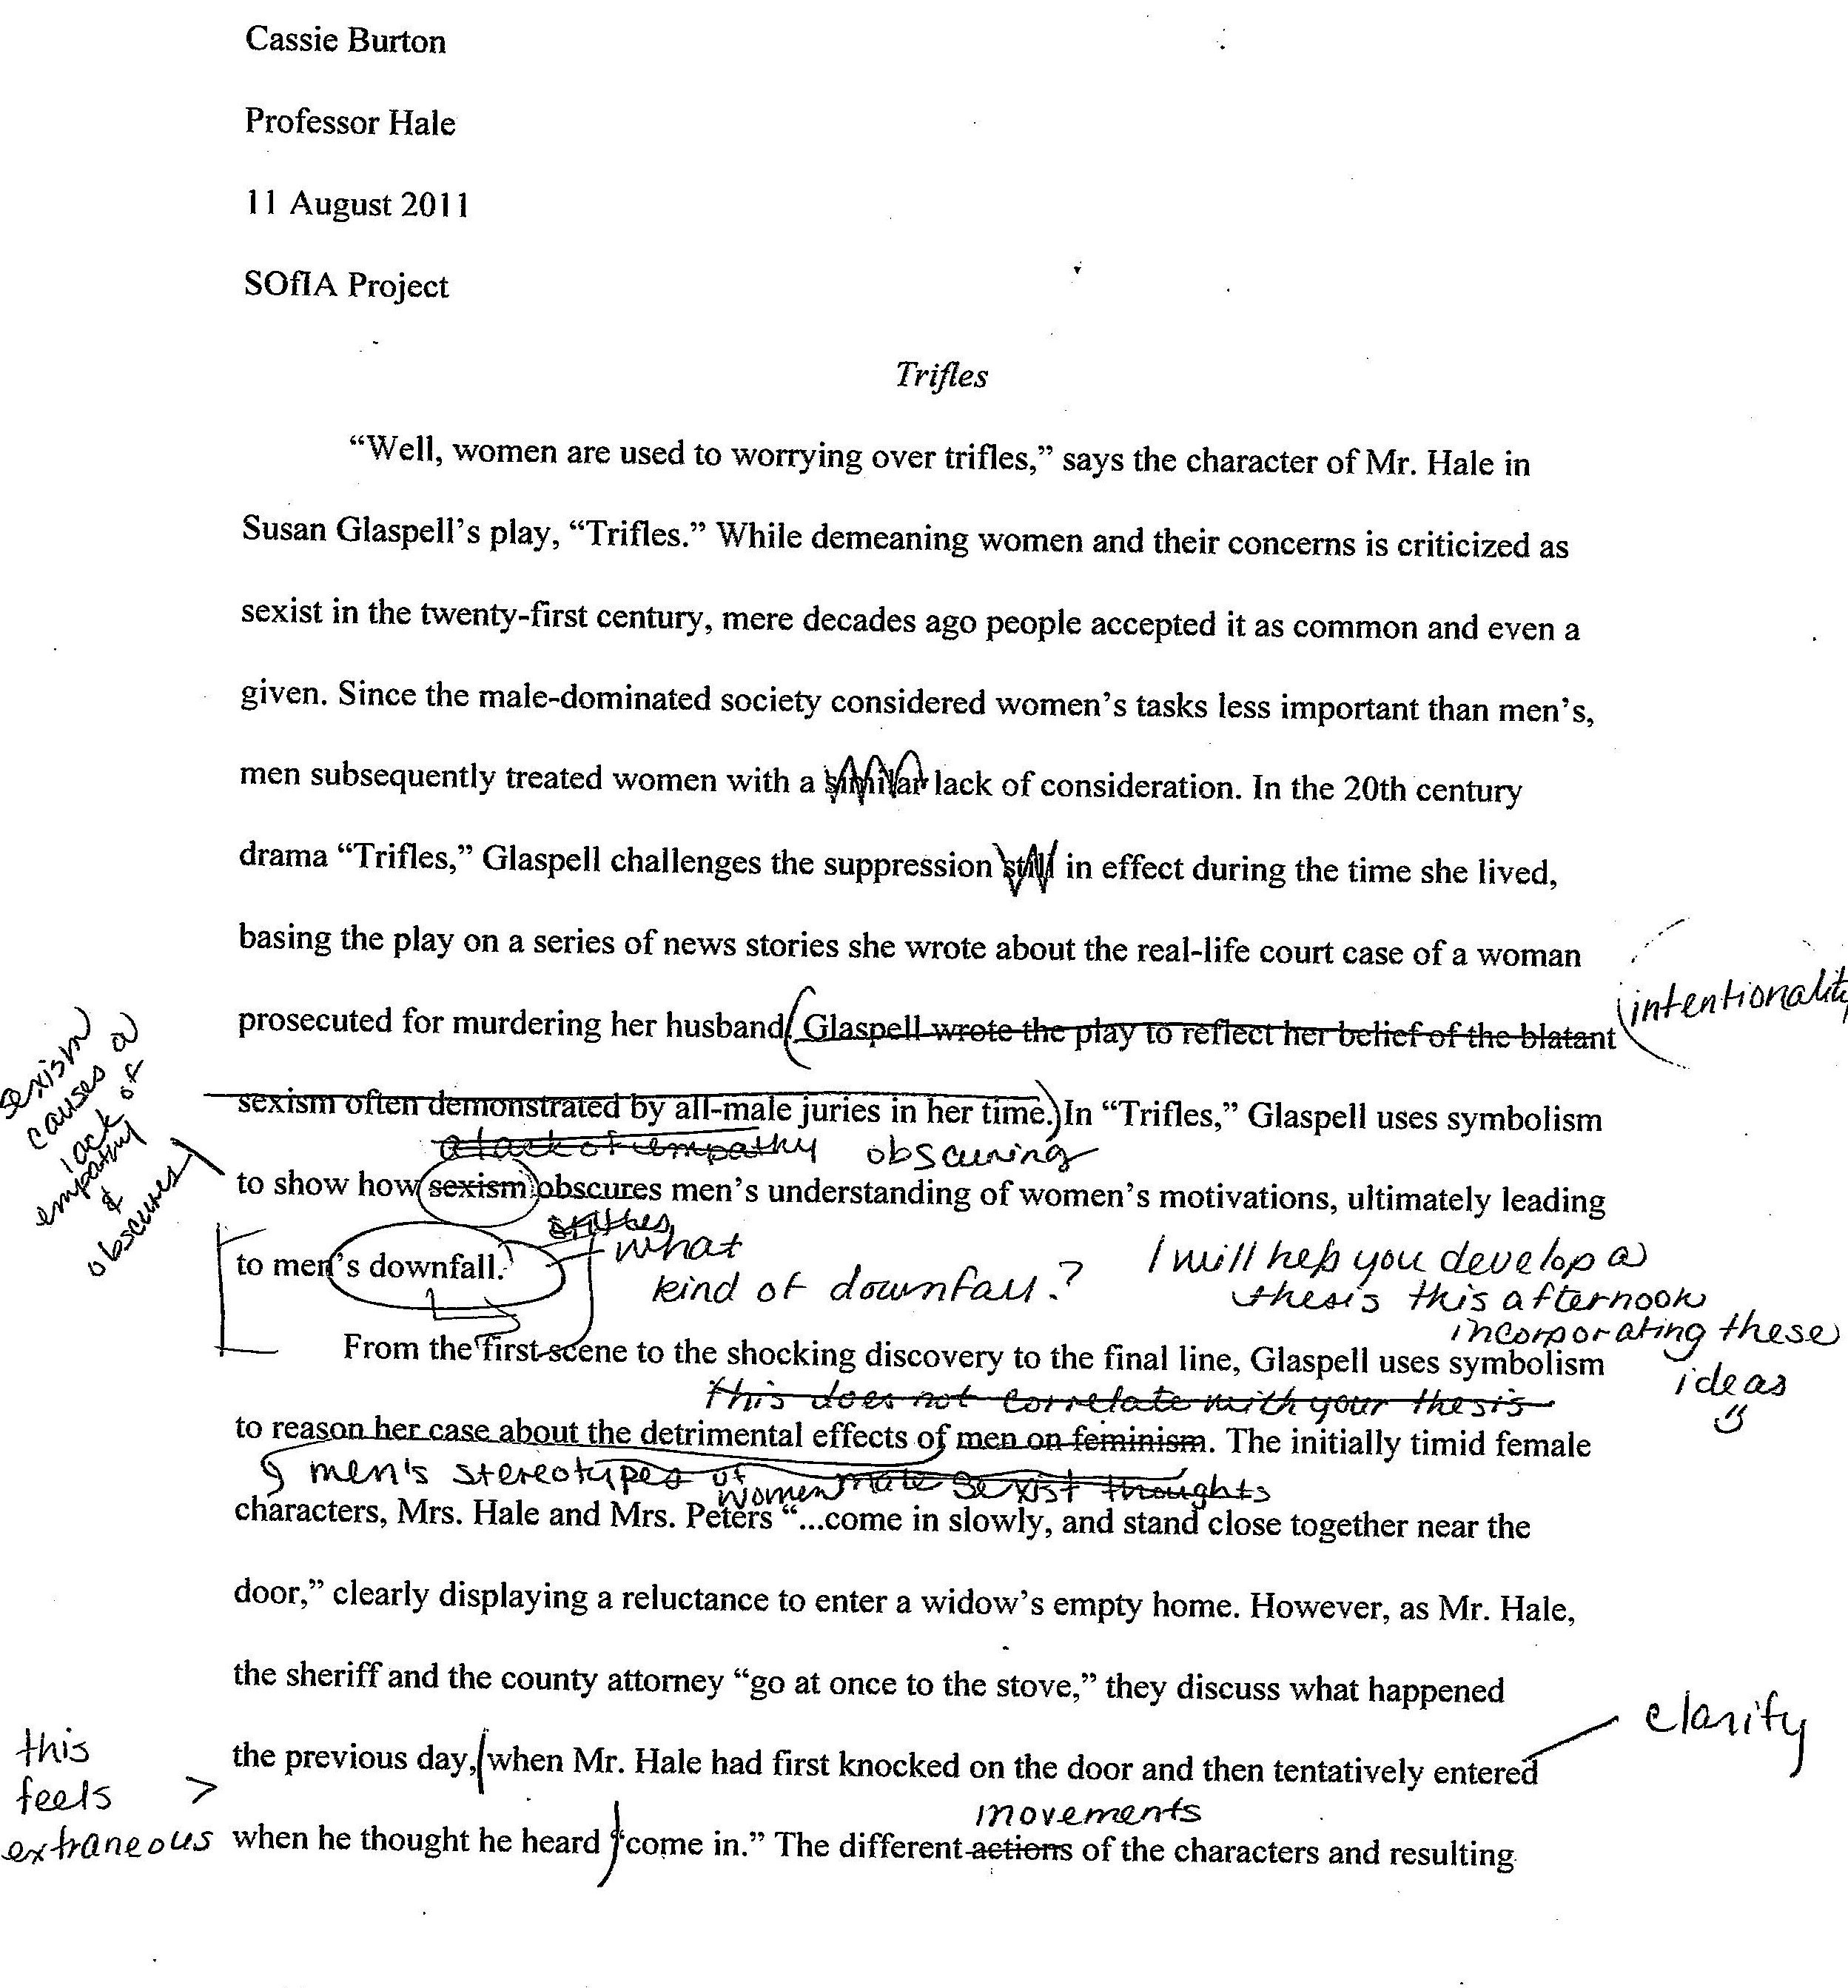 essay edit edit trifles essay thehiddenmessageintheplaytrifles g  trifles essay thehiddenmessageintheplaytrifles g trifles by susan trifles by susan glaspell students teaching english paper strategiessecond edit my essay